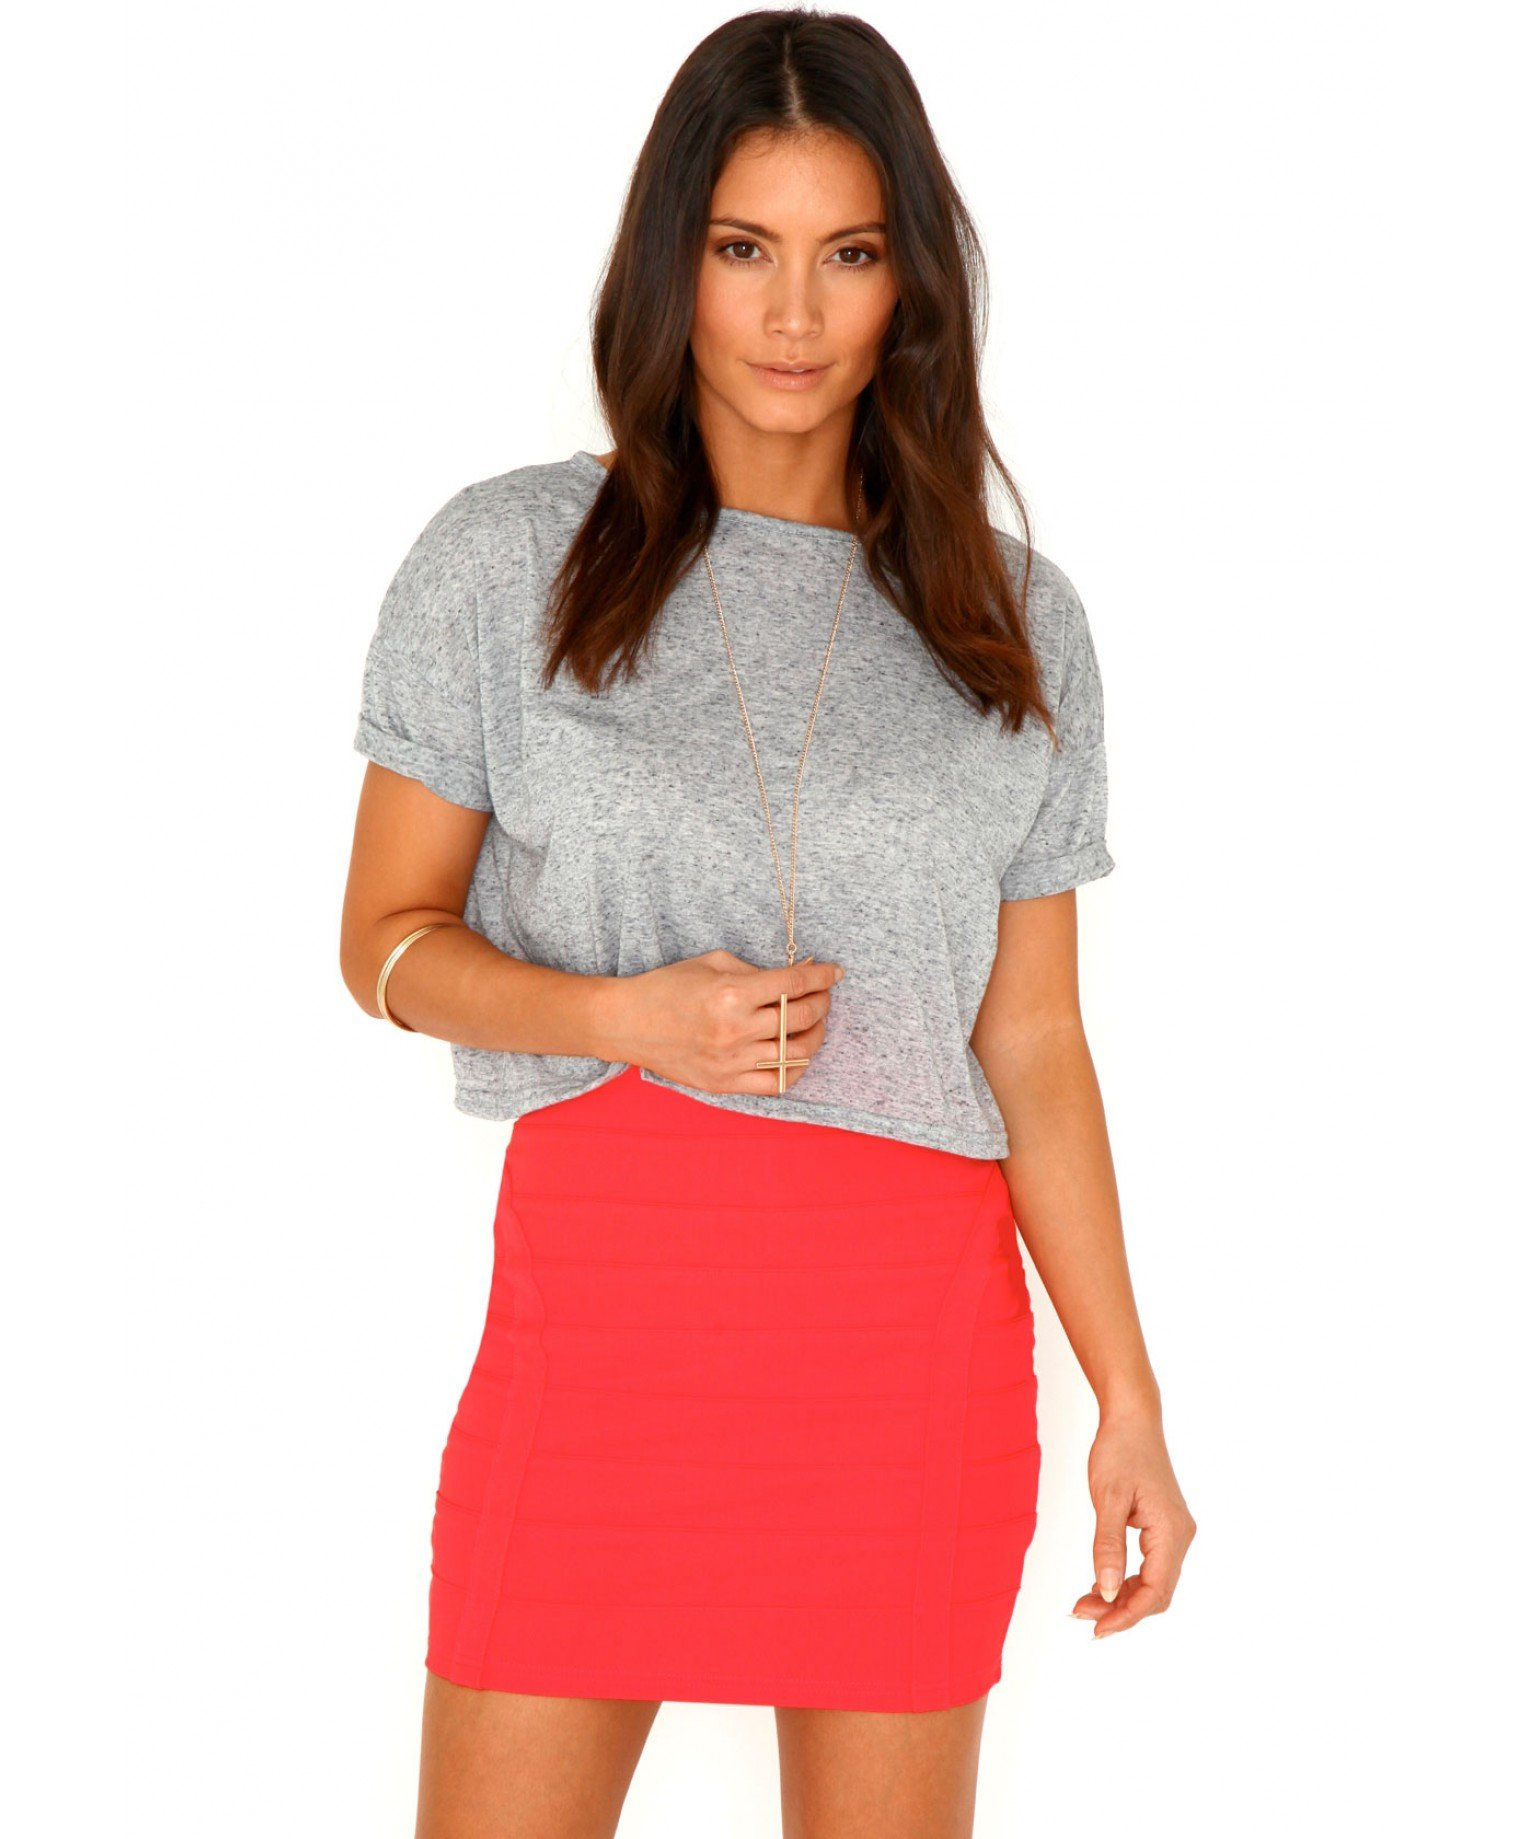 Missguided Maurine Bandage Bodycon Mini Skirt in Coral in Pink | Lyst